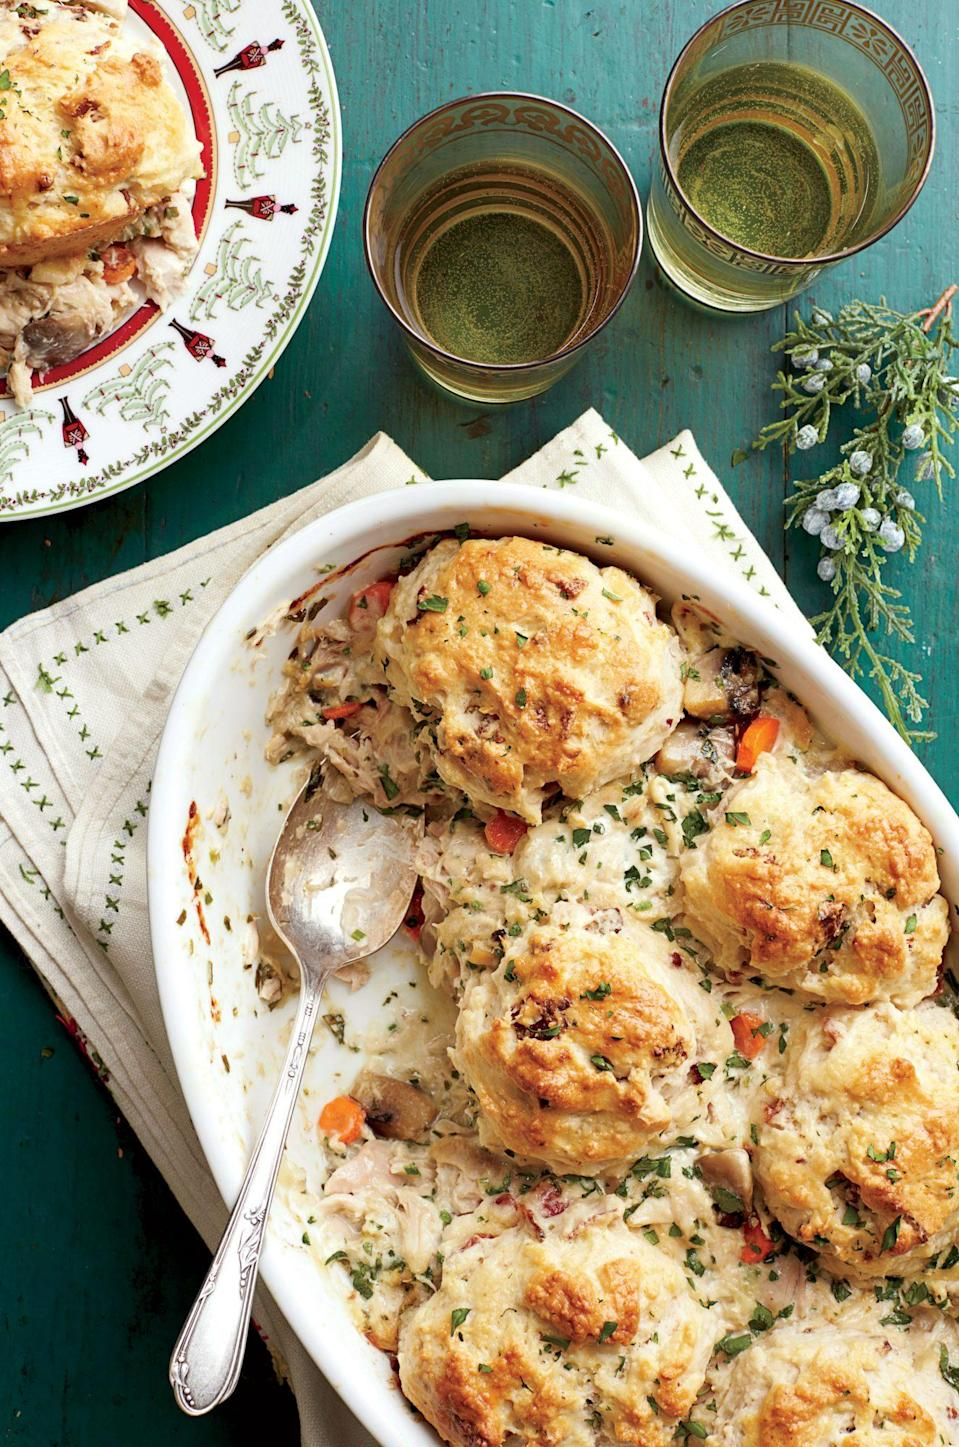 """<p><strong>Recipe: <a href=""""https://www.southernliving.com/recipes/chicken-and-biscuit-cobbler-recipe"""" rel=""""nofollow noopener"""" target=""""_blank"""" data-ylk=""""slk:Chicken-and-Biscuit Cobbler"""" class=""""link rapid-noclick-resp"""">Chicken-and-Biscuit Cobbler</a></strong></p> <p>When you hear """"cobbler,"""" you might think of sweet peach and fresh berry confections in the summertime. This winter, enjoy a different kind of cobbler with this savory casserole topped with fluffy buttermilk biscuits with bacon in them.</p>"""